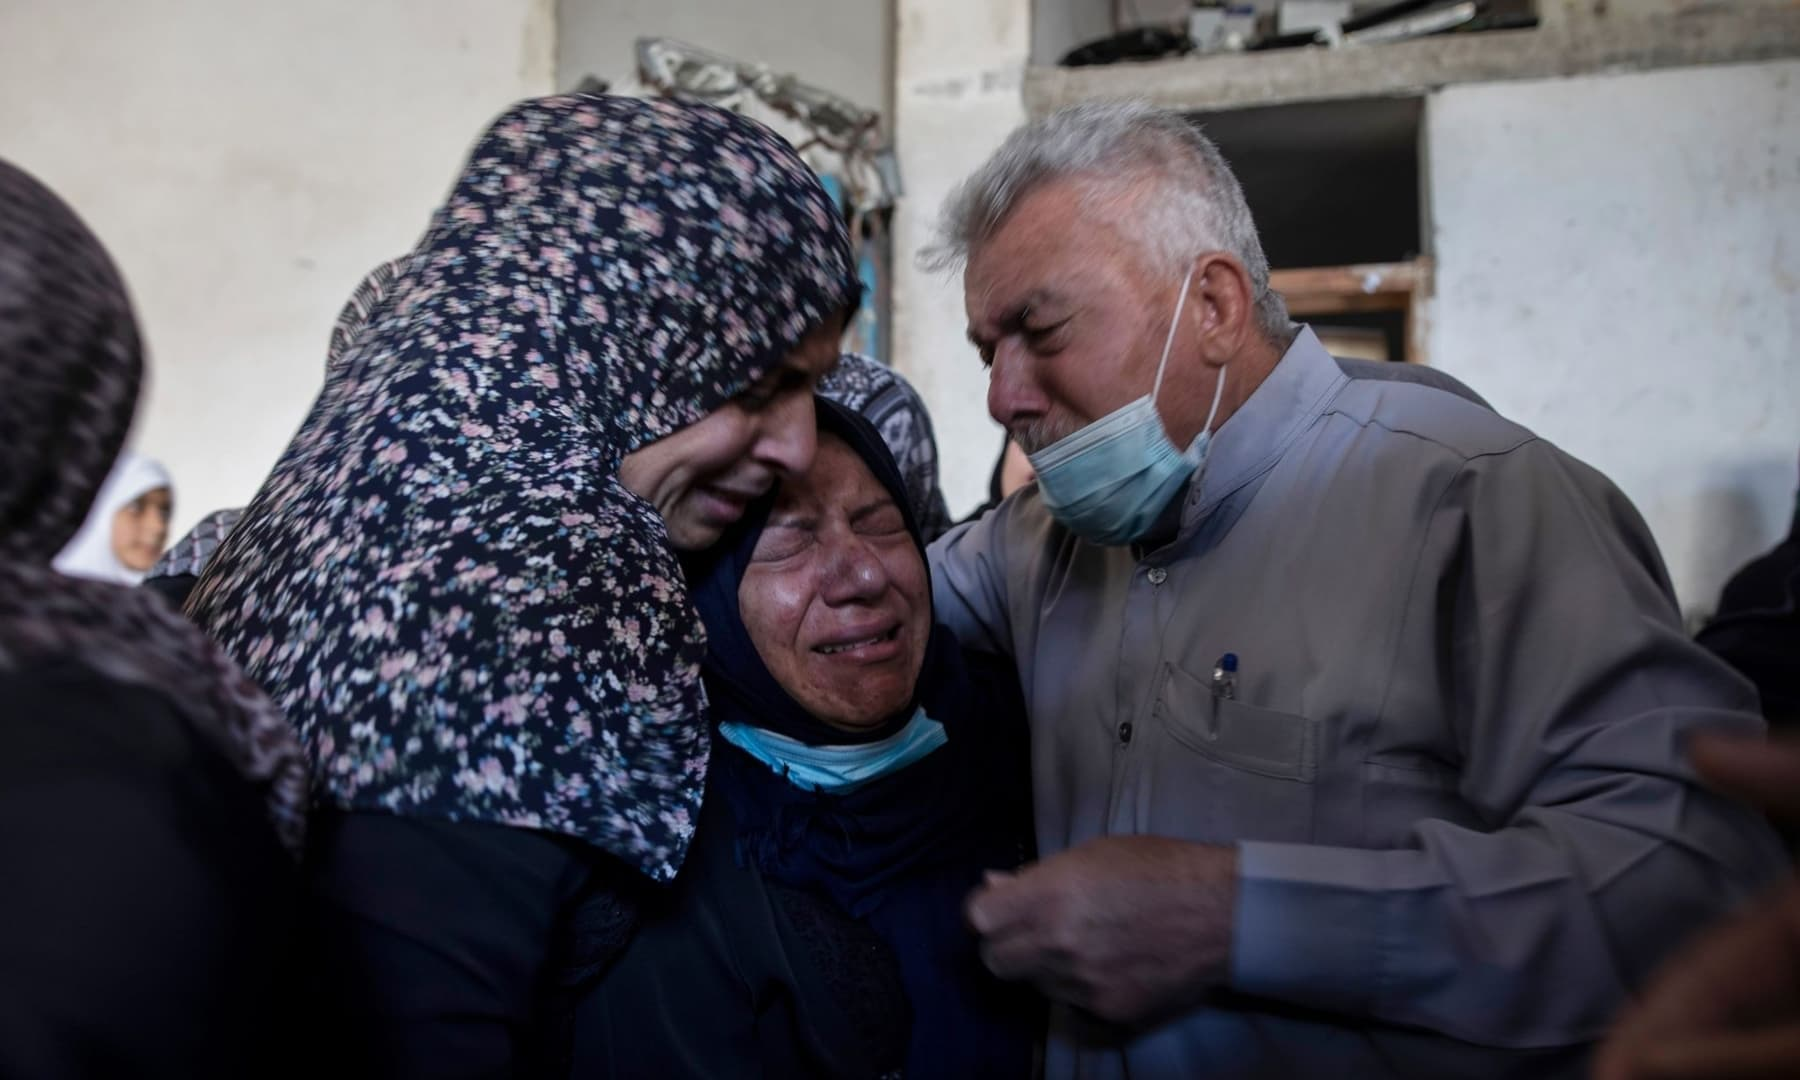 Palestinian relatives mourn over the bodies of four brothers from the Al-tanani family that were found under the rubble of a destroyed house following Israeli airstrikes in Beit Lahiya, northern Gaza Strip, May 14, 2021. — AP